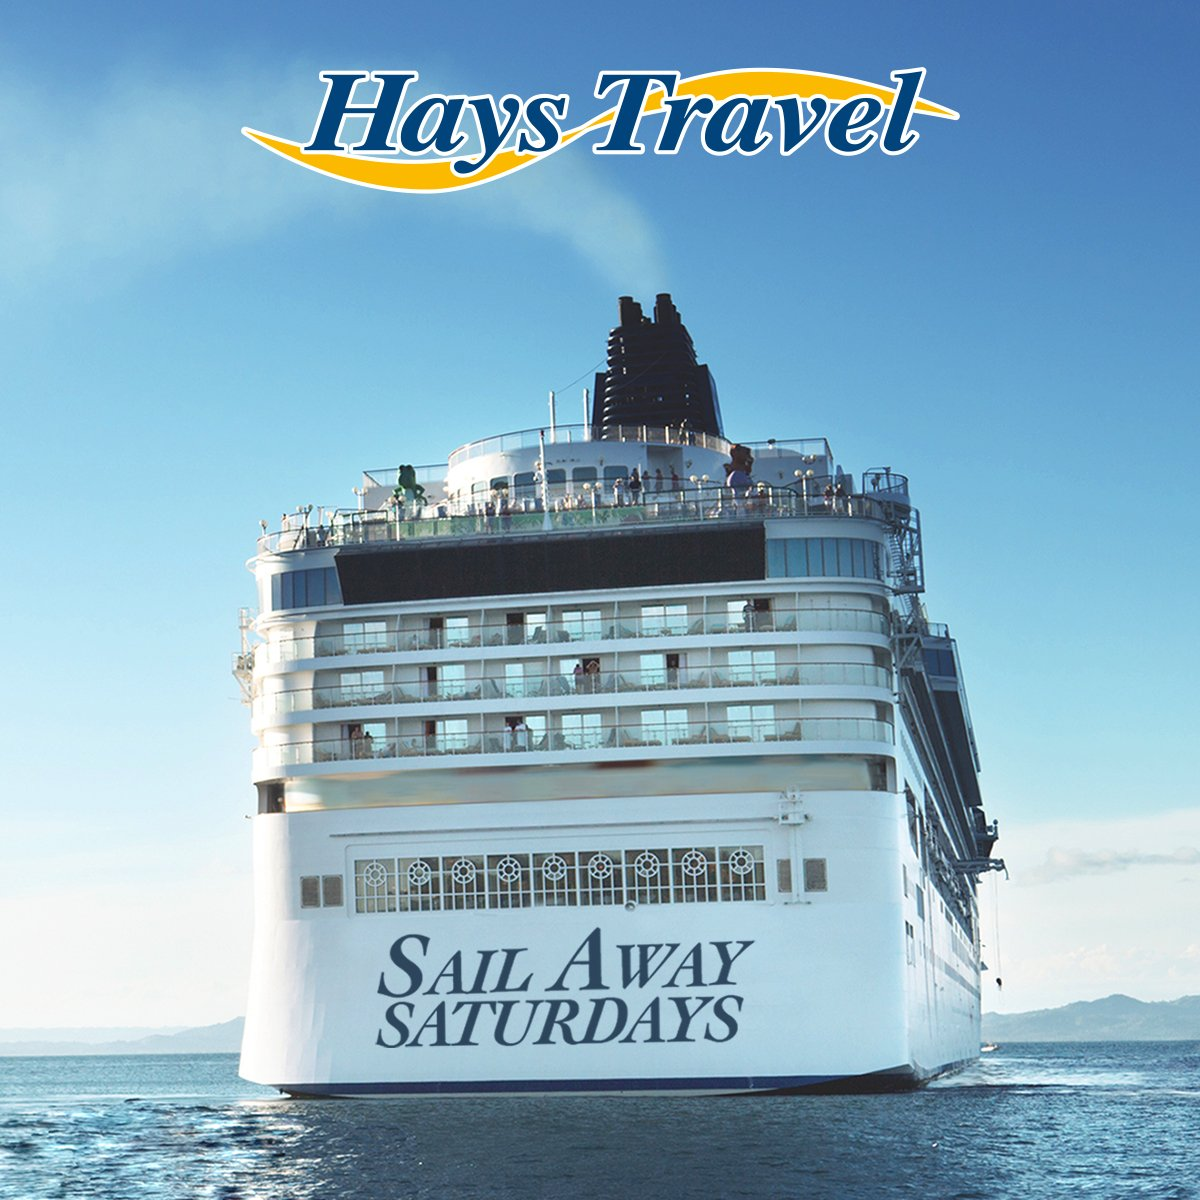 hays travel - photo #34